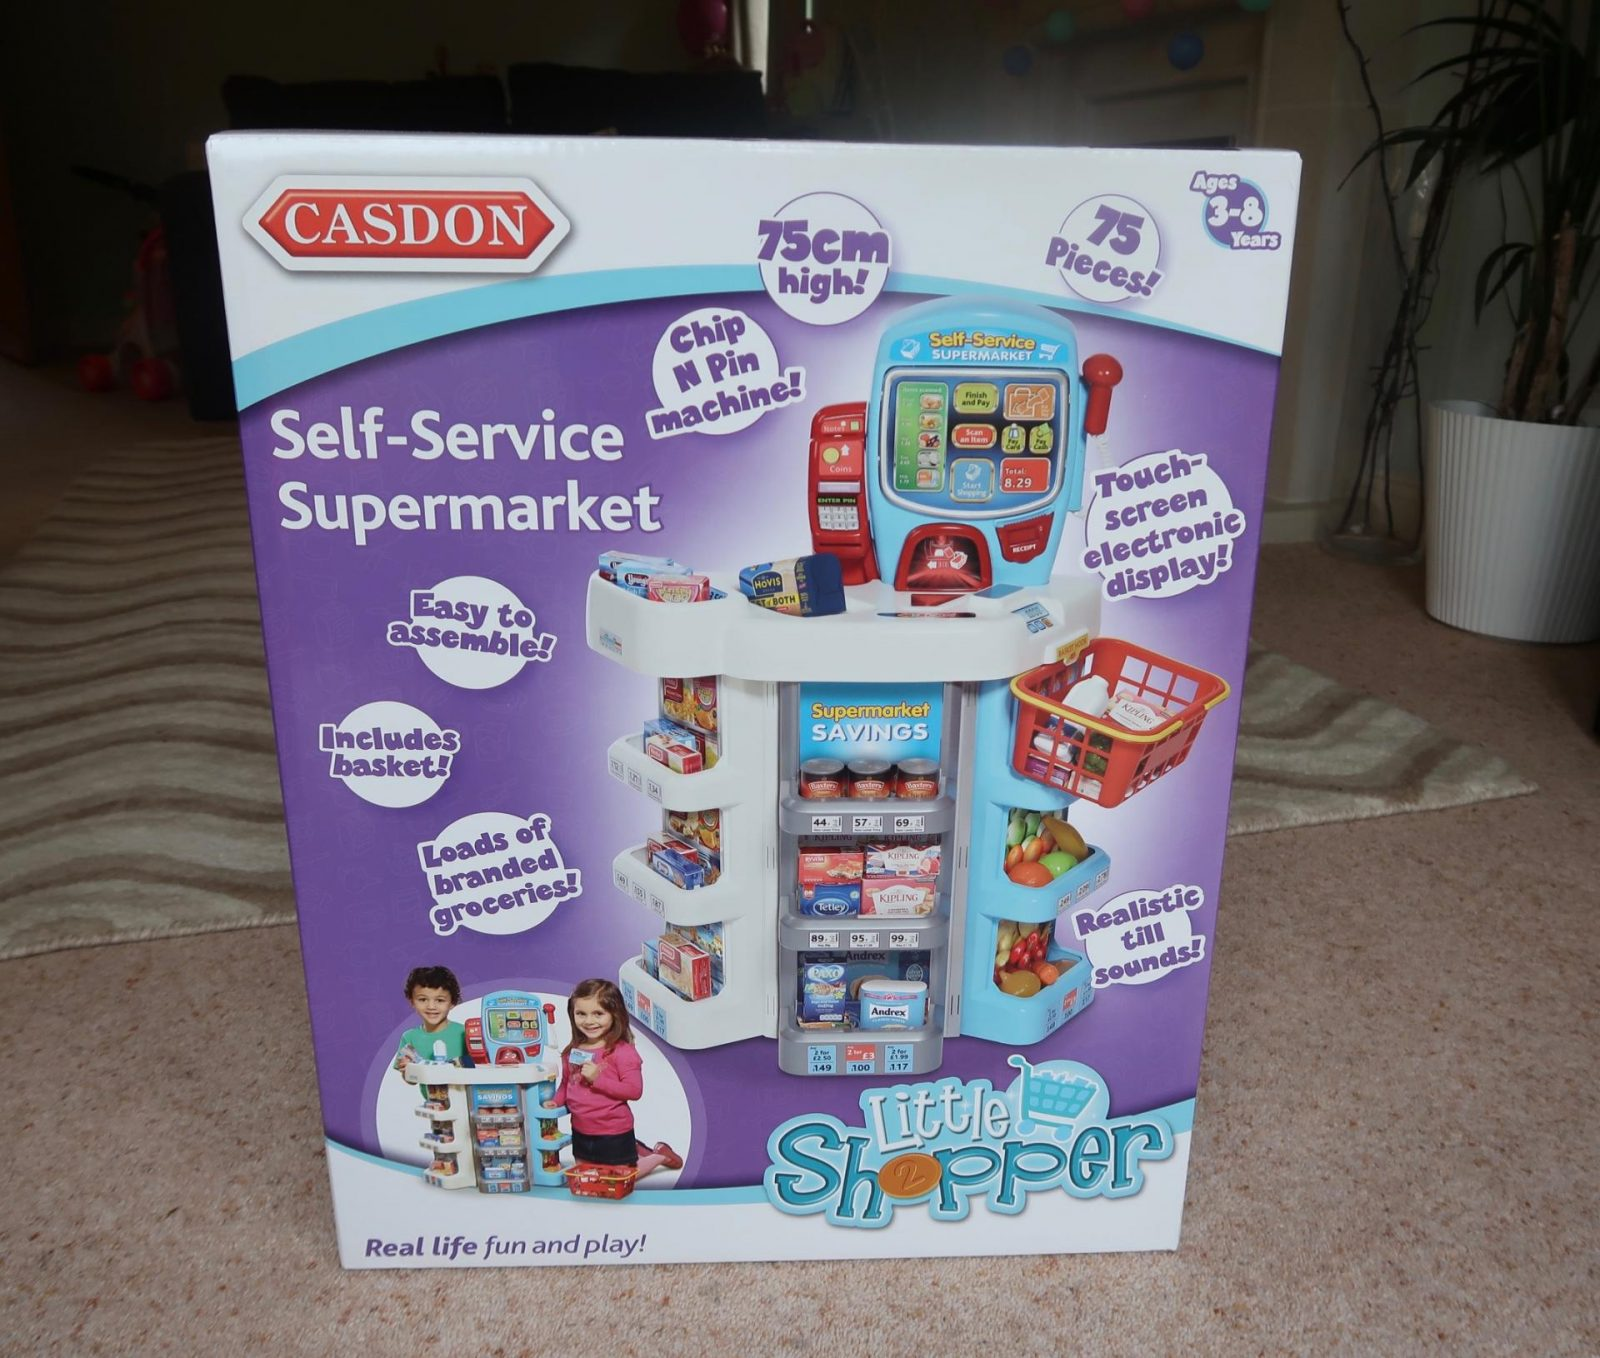 casdon self service supermarket in box